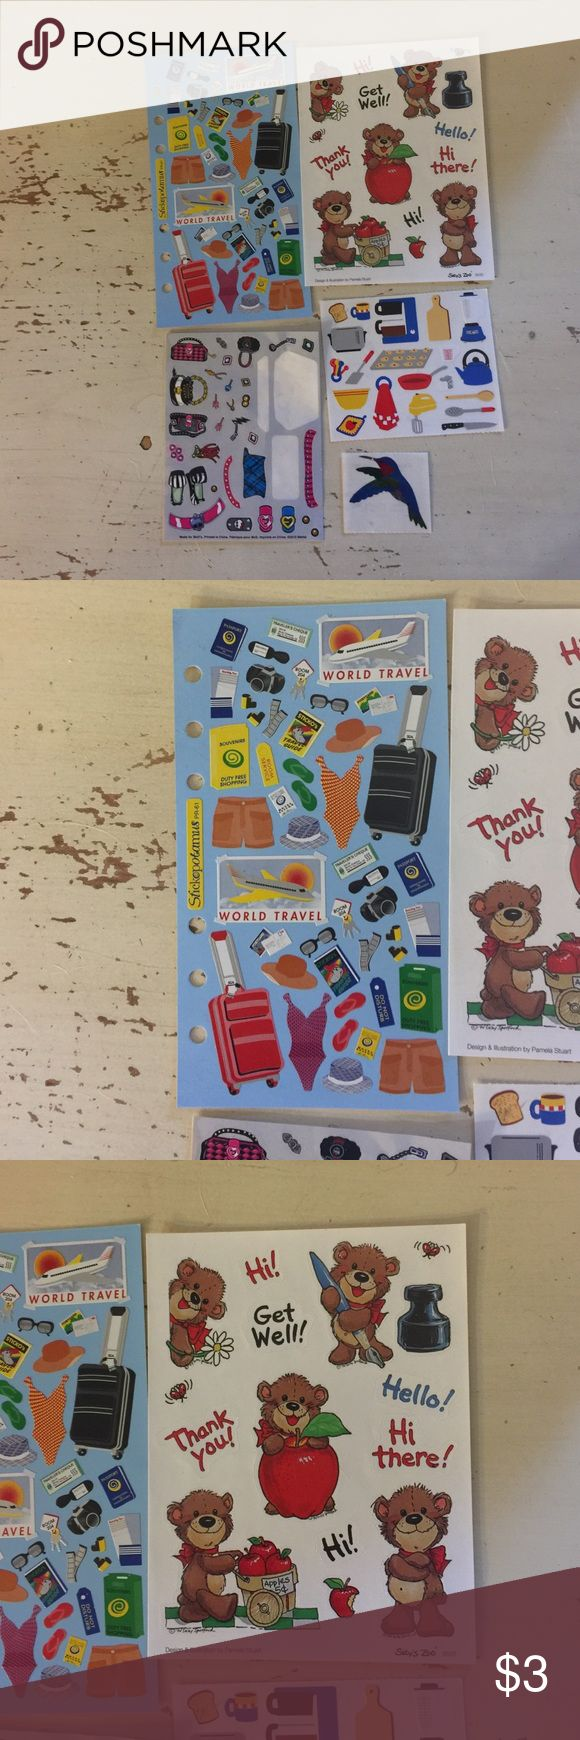 Scrapbook Sticker Bundle Small Scrapbook Sticker Bundle, for pages, journals, cards, or planners. See photos. Other